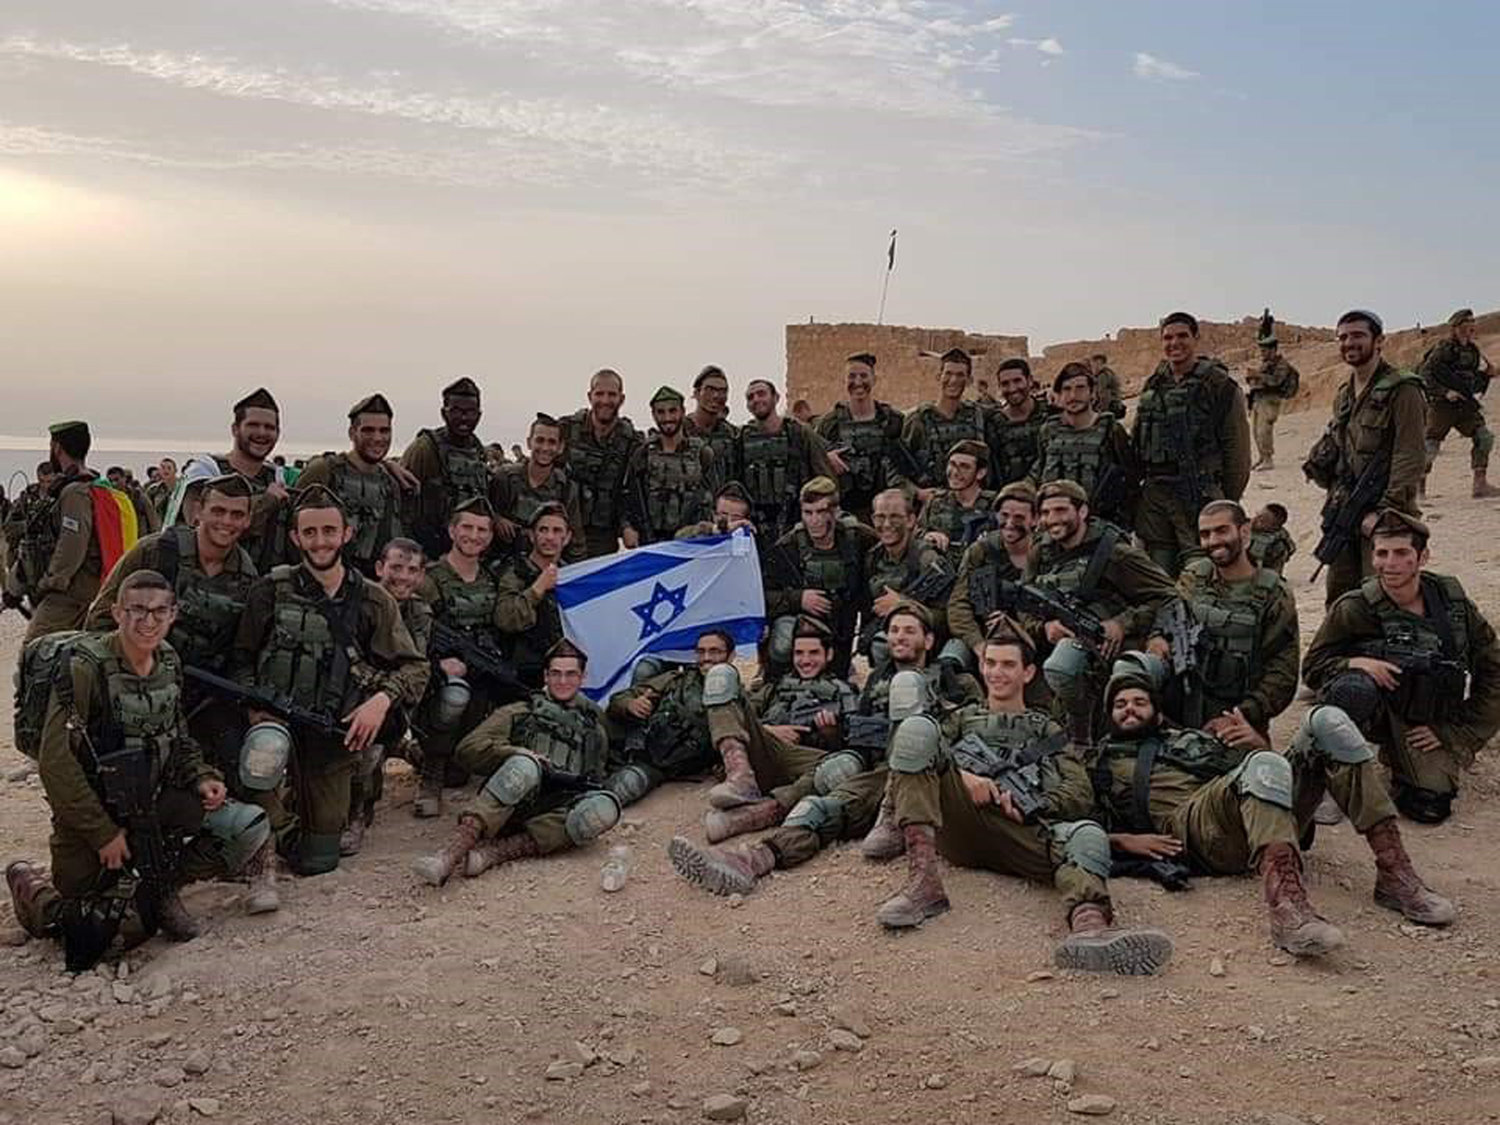 Milworn said that many members of the Israel Defense Forces are, like him, lone soldiers who come from different parts of the world.